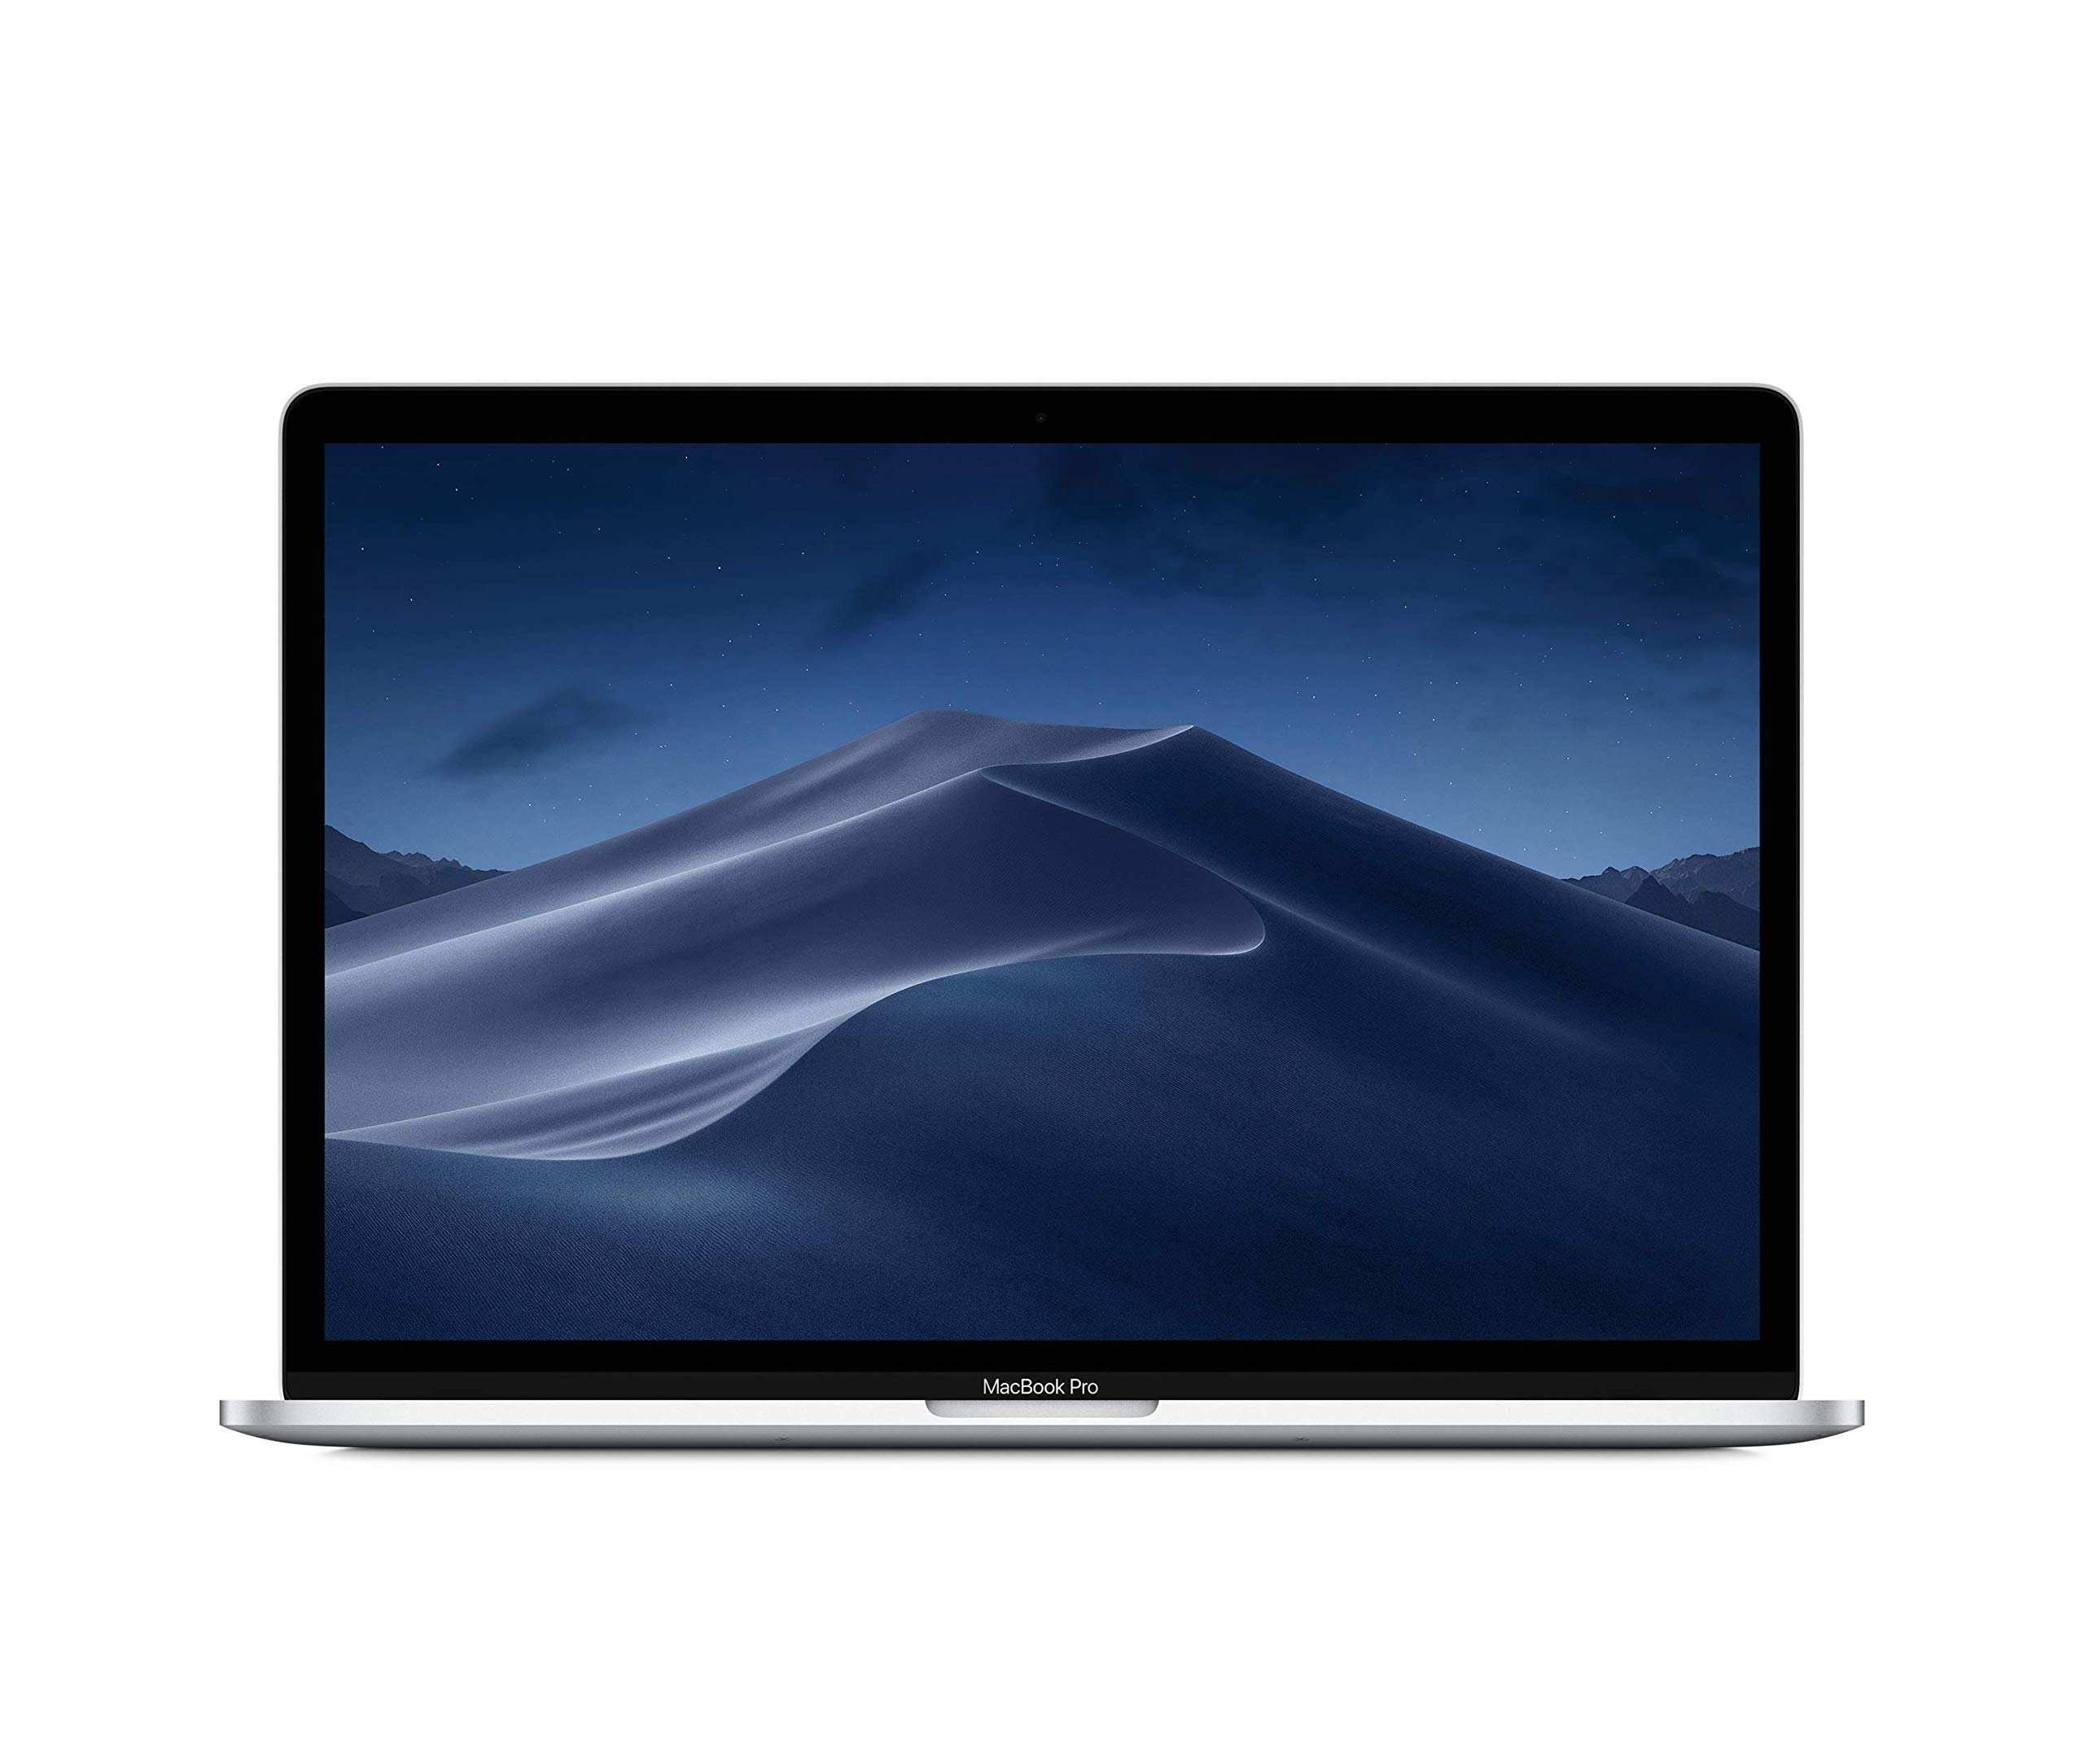 Apple MacBook Pro (15-Inch, Previous Model, 16GB RAM, 256GB Storage) – Space Gray